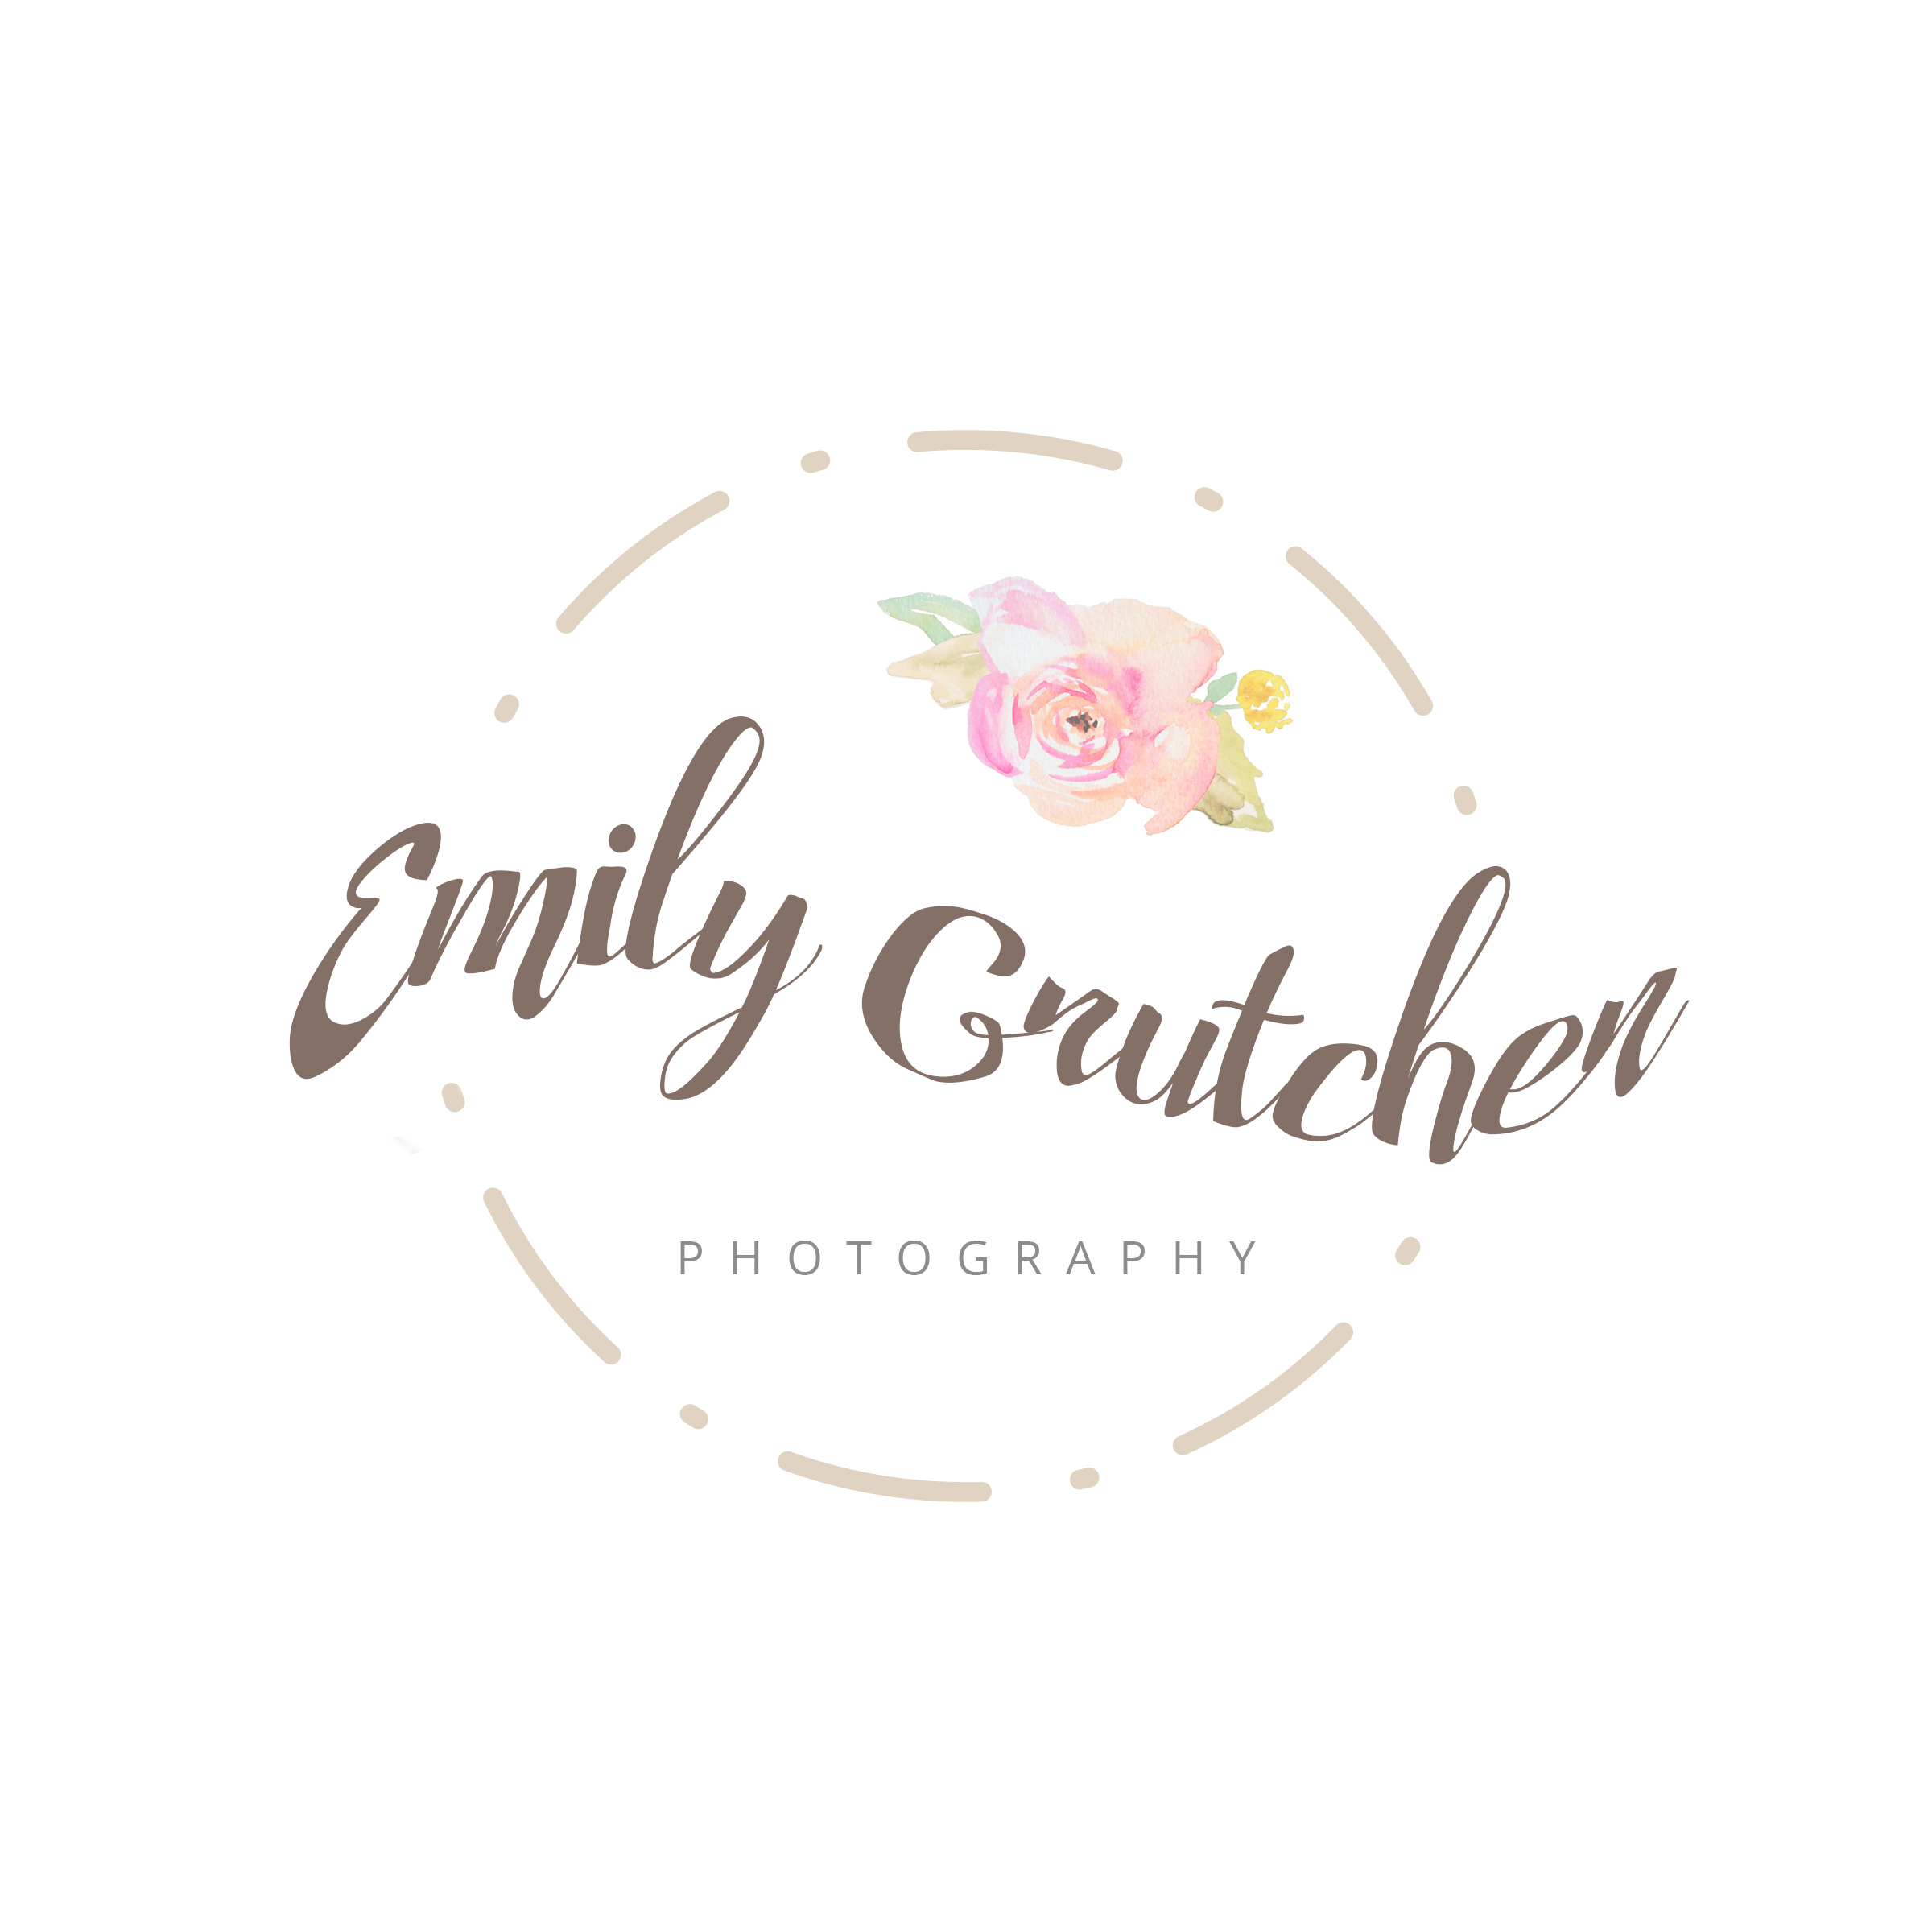 premade photography logo design